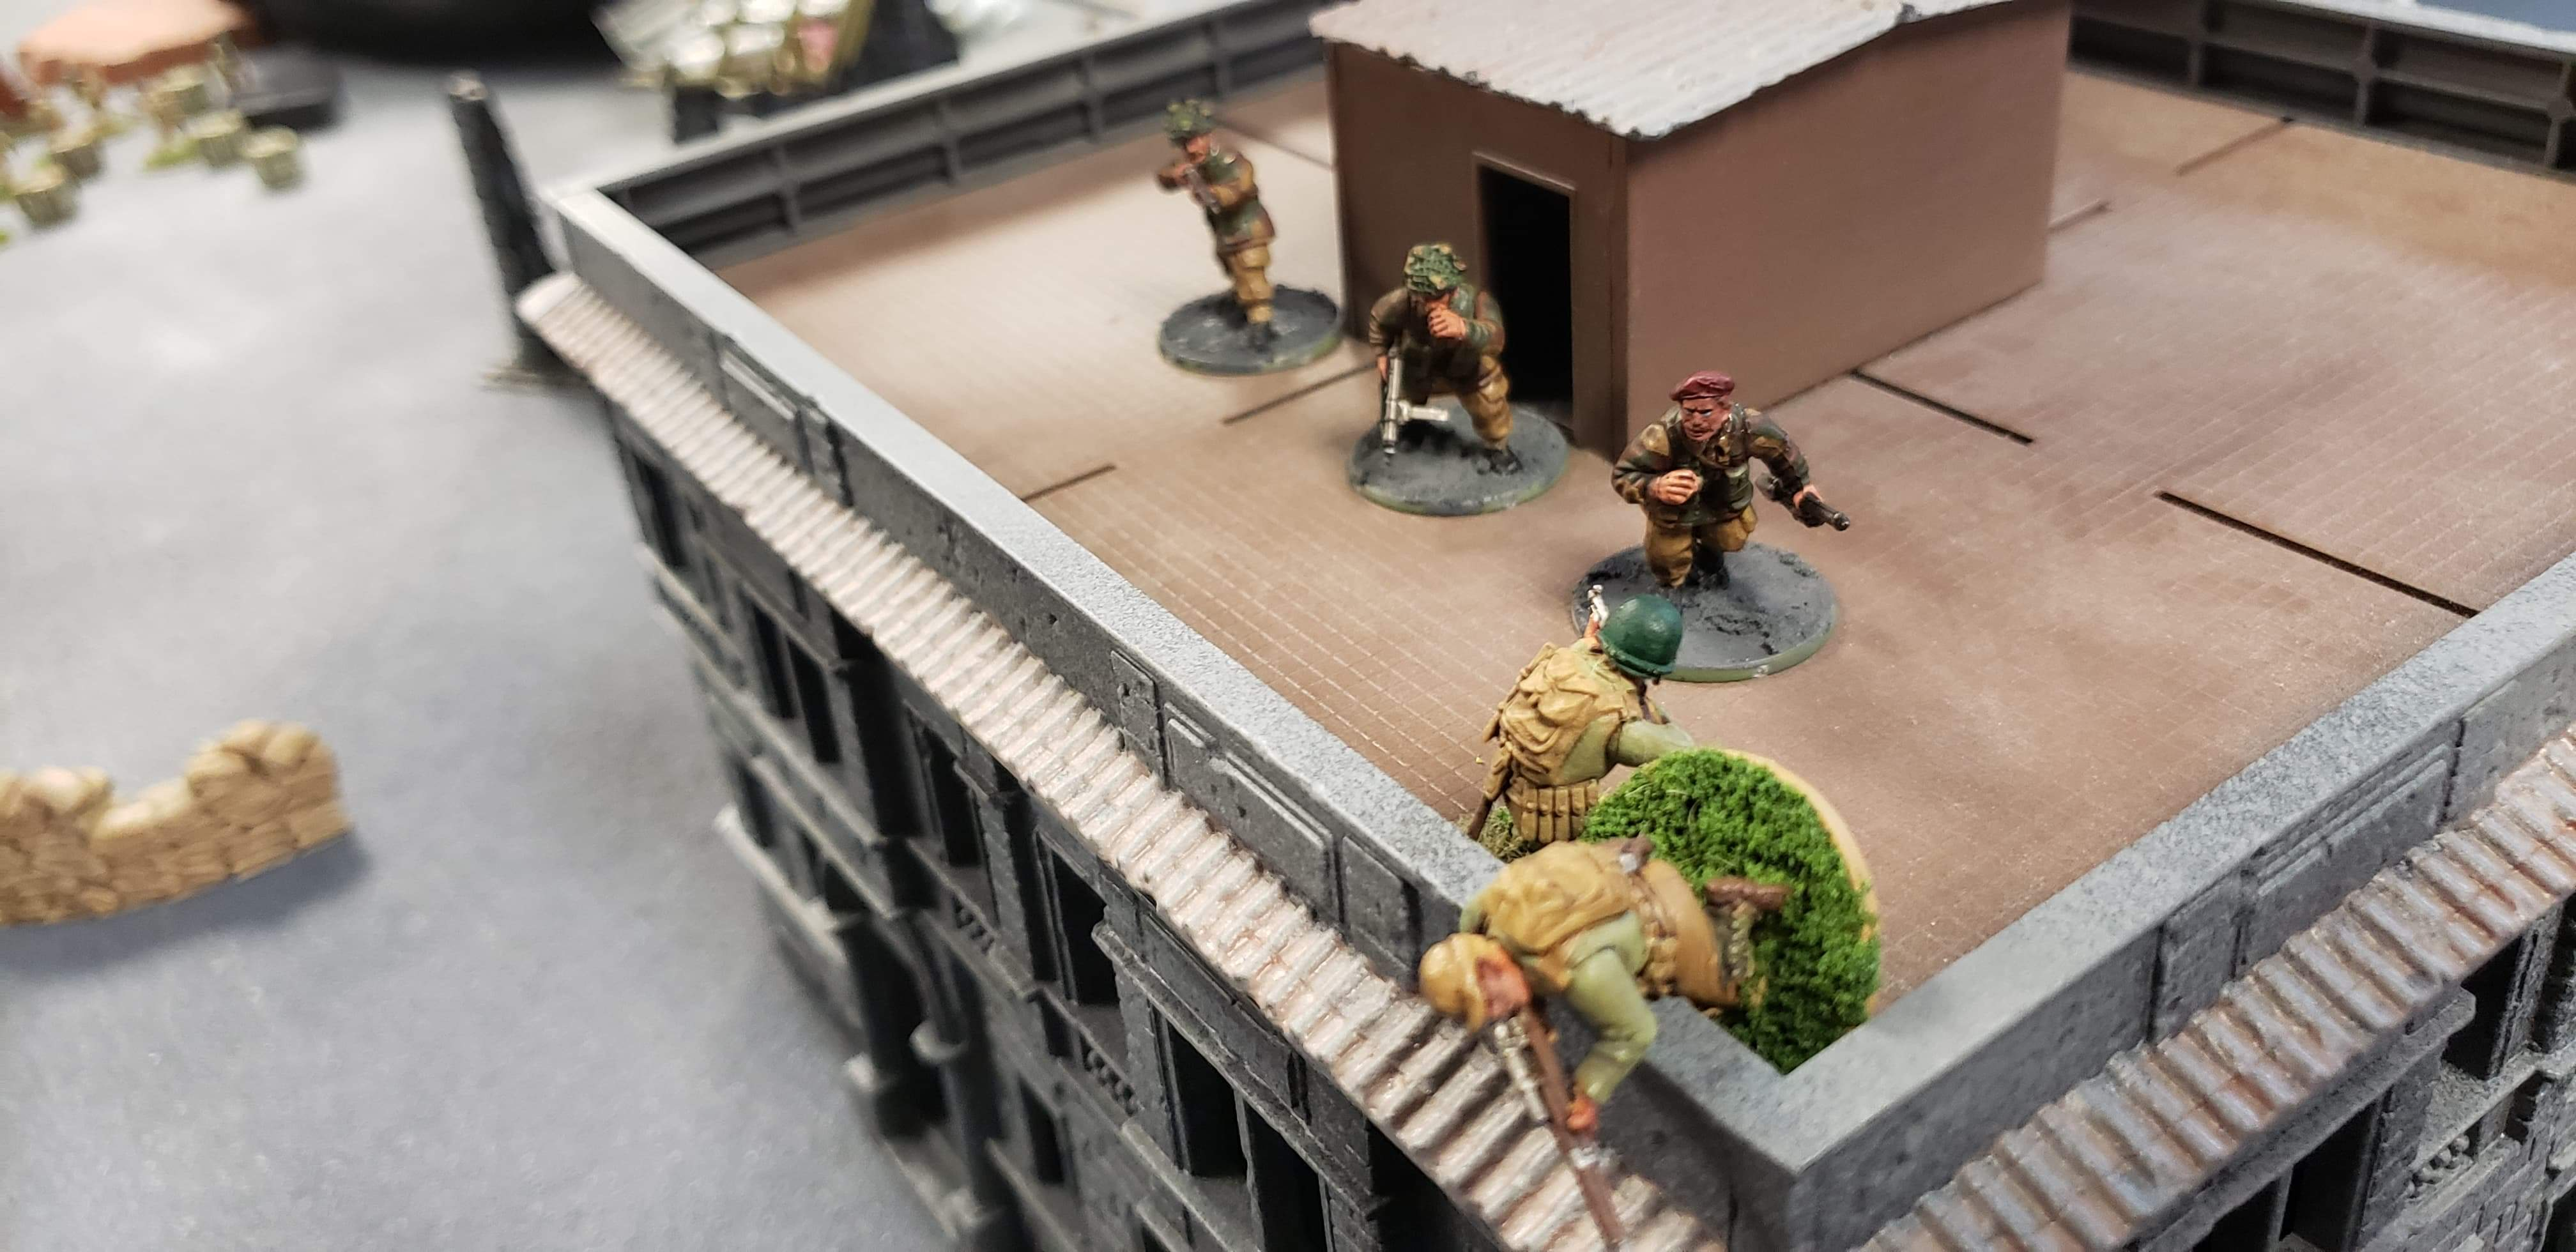 289th Infantry Regiment versus Der Hund in a fierce infantry engagement